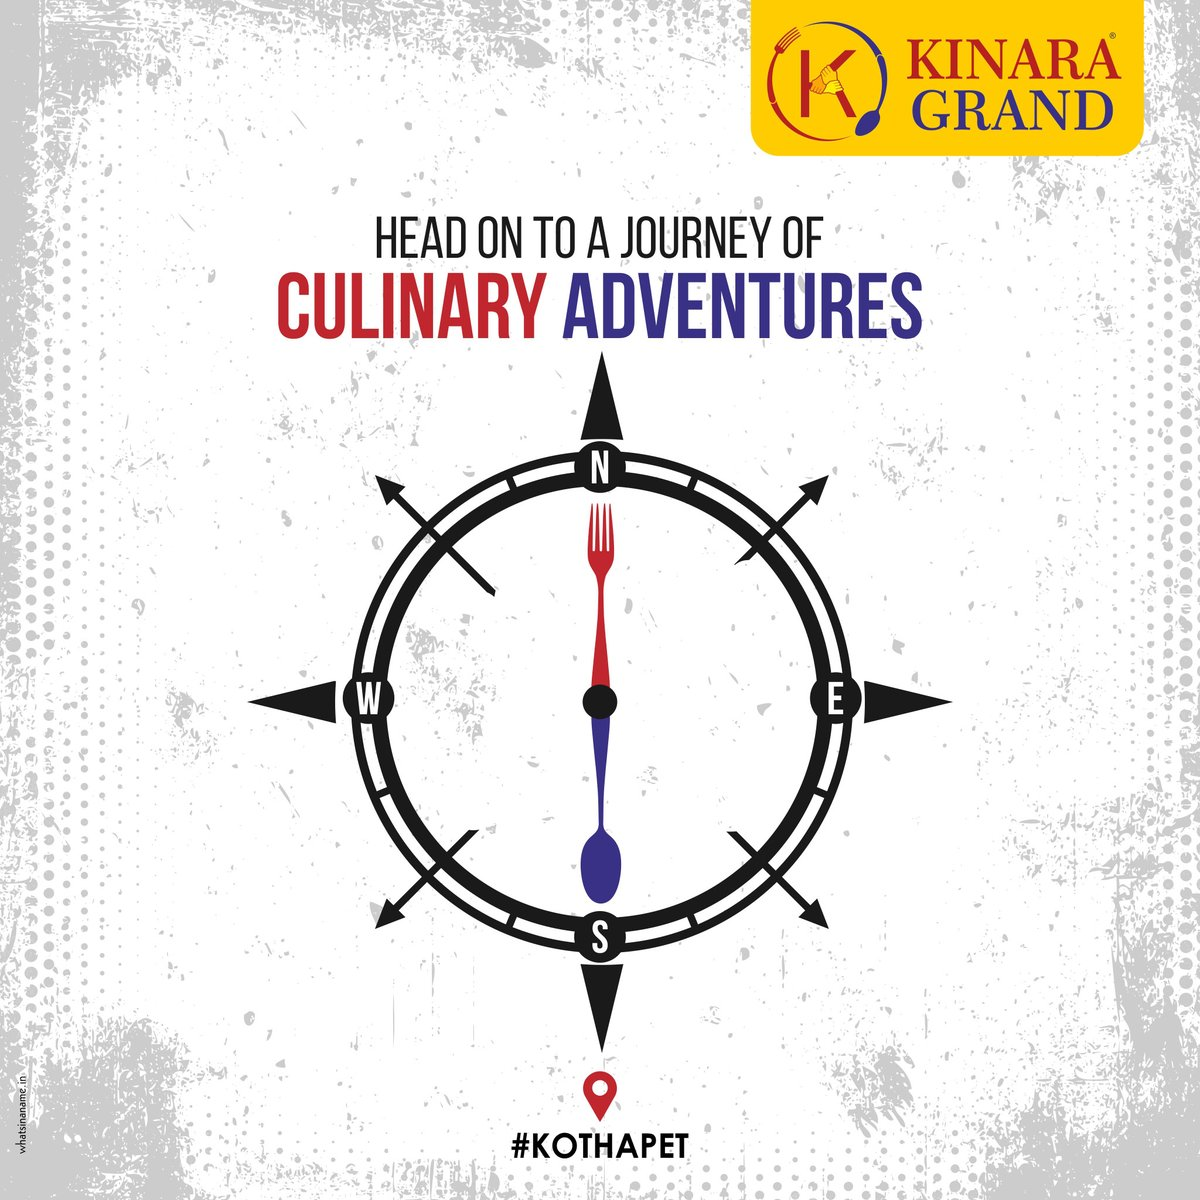 Our Kothapet restaurant is best known for a memorable dining experience in this part of the city while we take you on an expedition of culinary escapades as you enjoy your meal.    #KinaraGrand #food #Kothapet #Cuisine #loveforfood #foodie #foodheaven